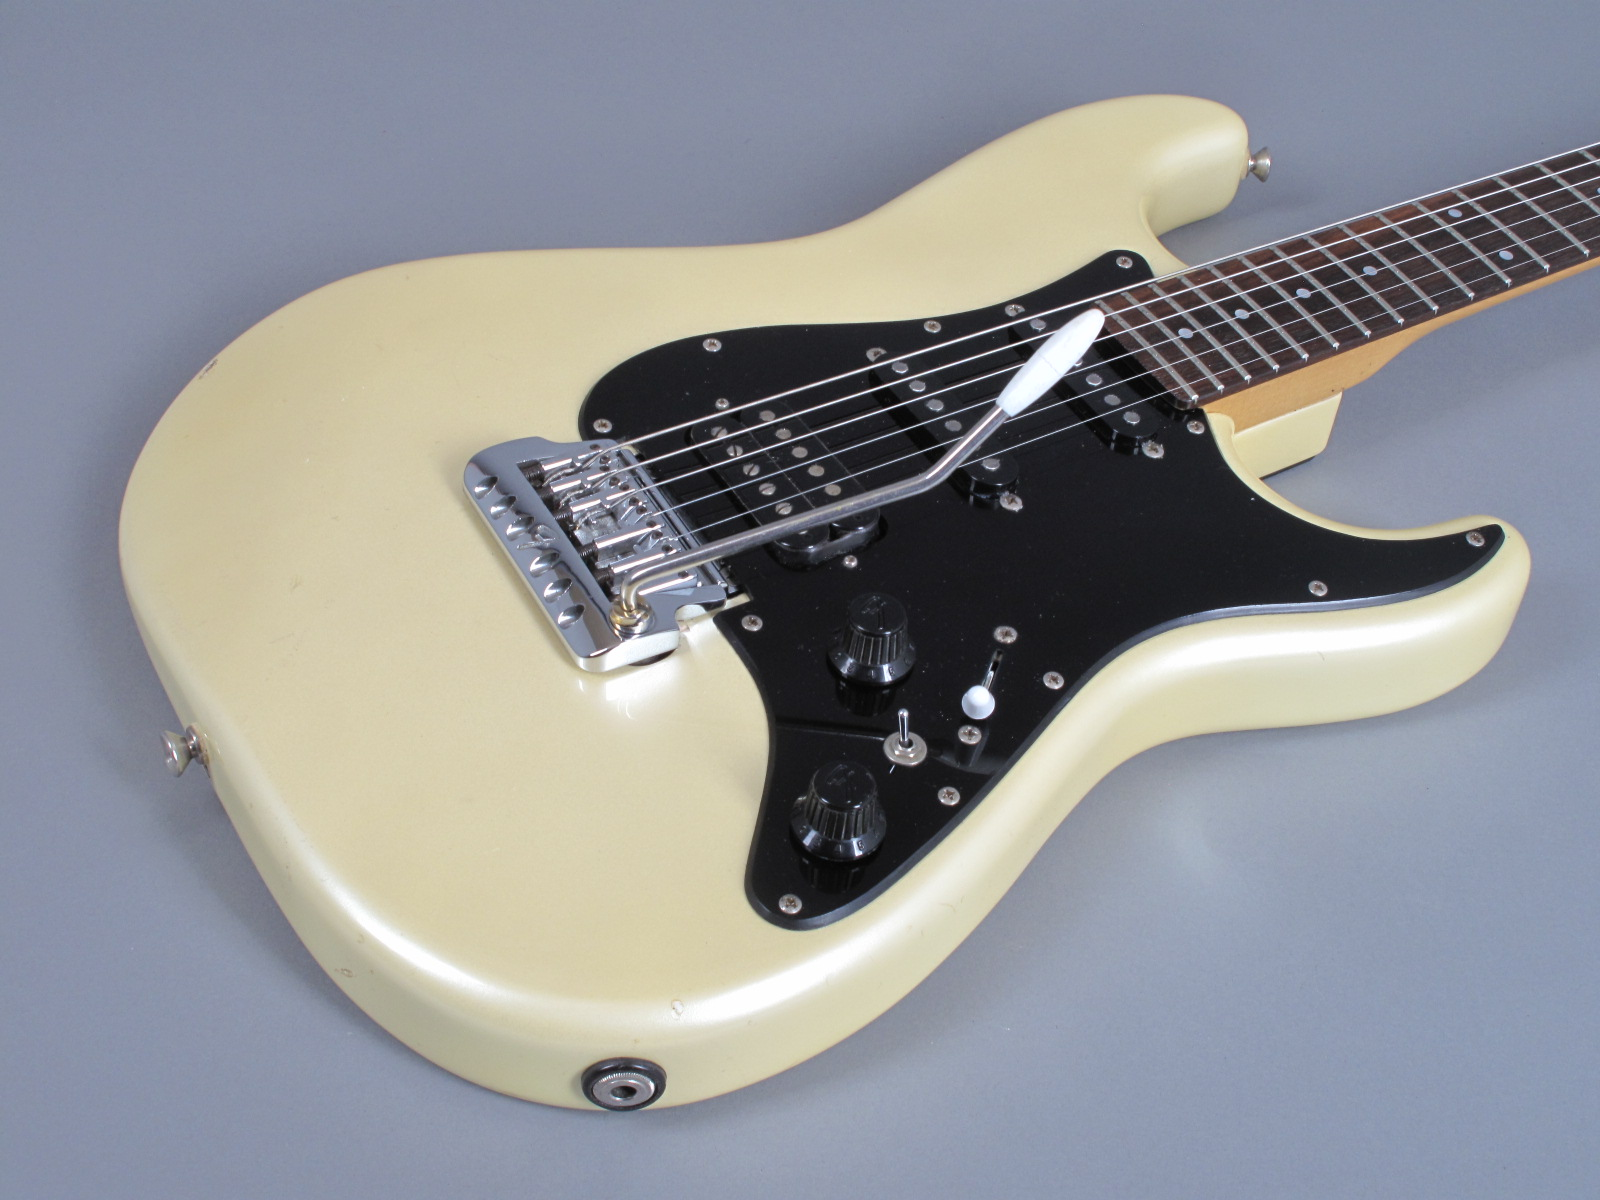 https://guitarpoint.de/app/uploads/products/1985-fender-contemporary-mij-stratocaster-olympic-white-metallic/1985-Fender-Stratocaster-OlympicWhite-E512353-7.jpg